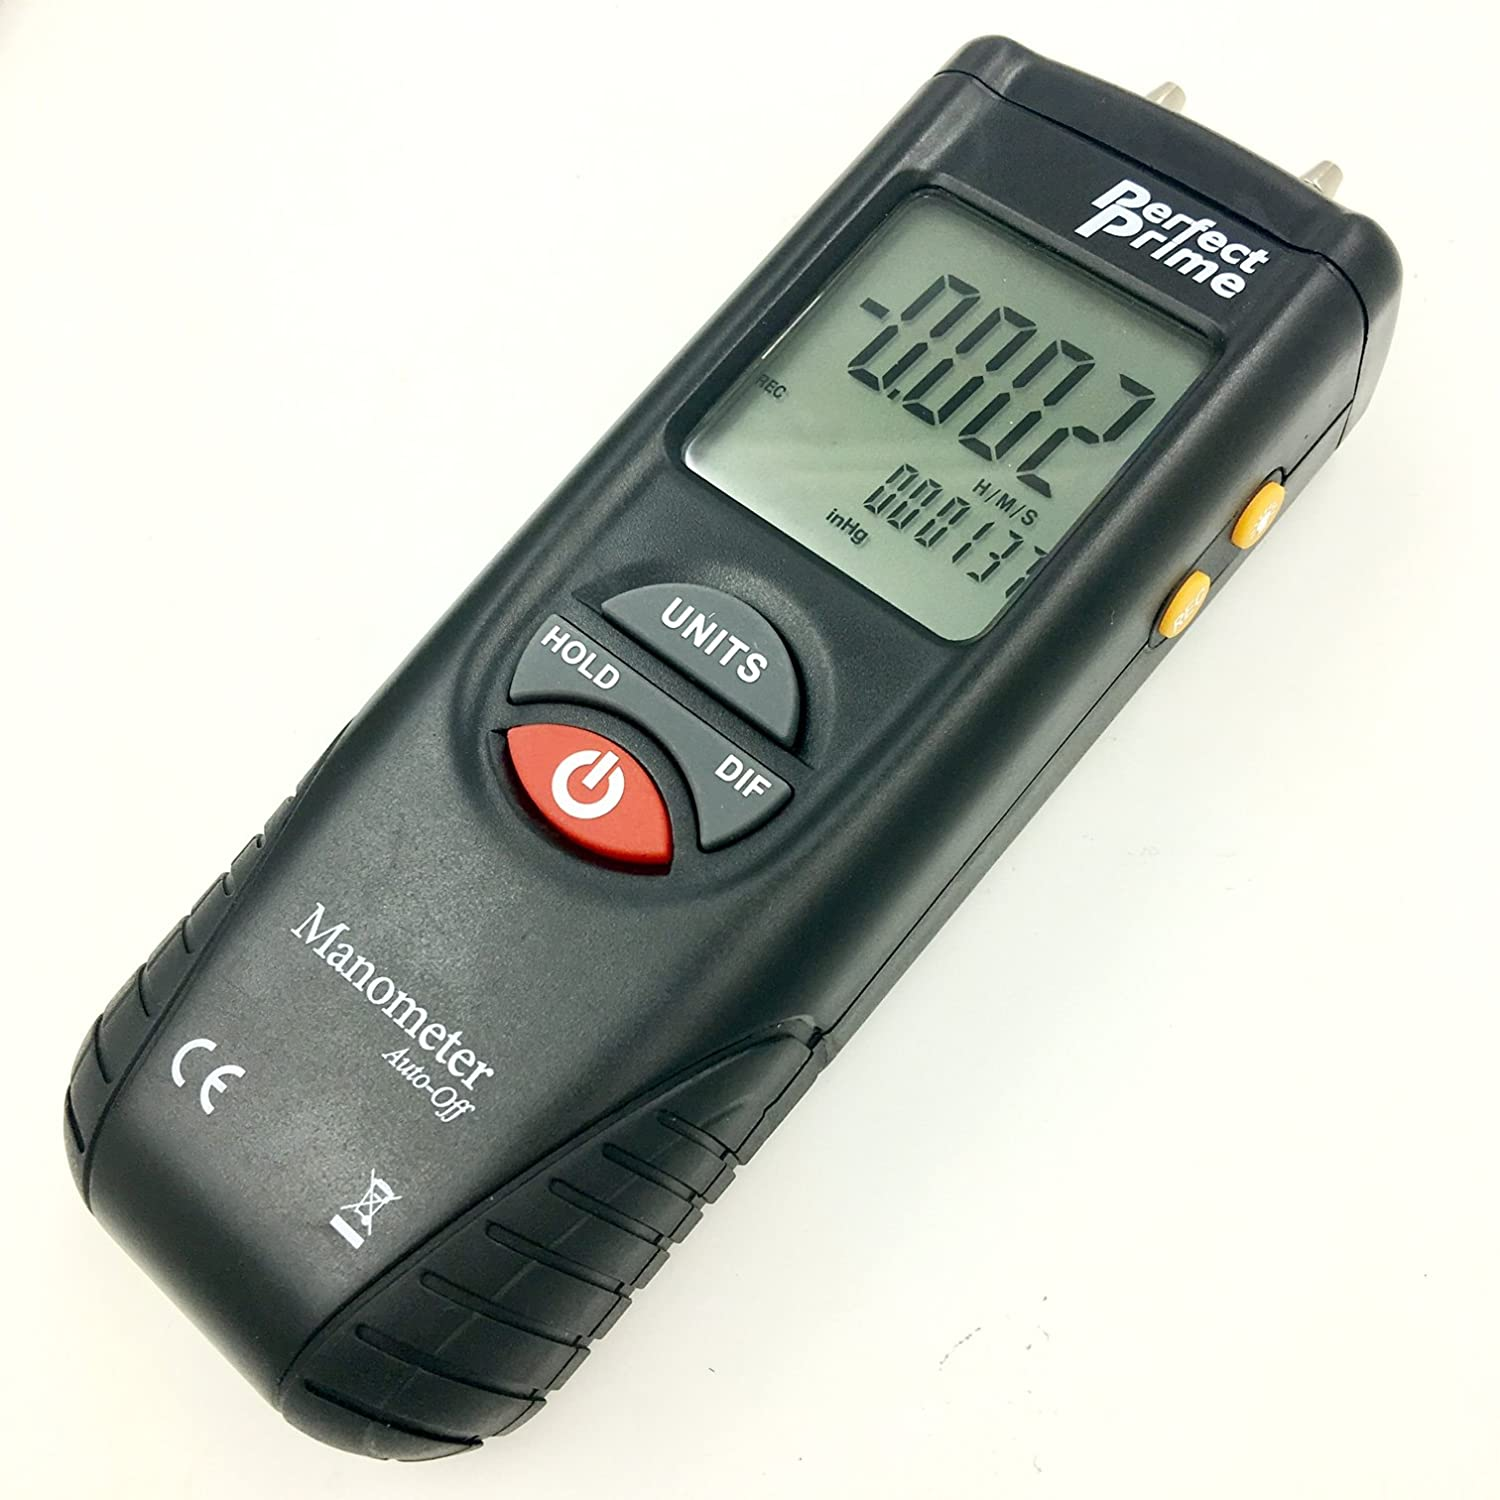 Perfect-Prime AR1890P1 /±55.4 H2O with 304 Stainless Steel Static Tube 5.13 x 2.34 Length /±2 psi Digital Air Pressure Manometer to Measure Gauge /& Differential Pressure /±13.79kPa